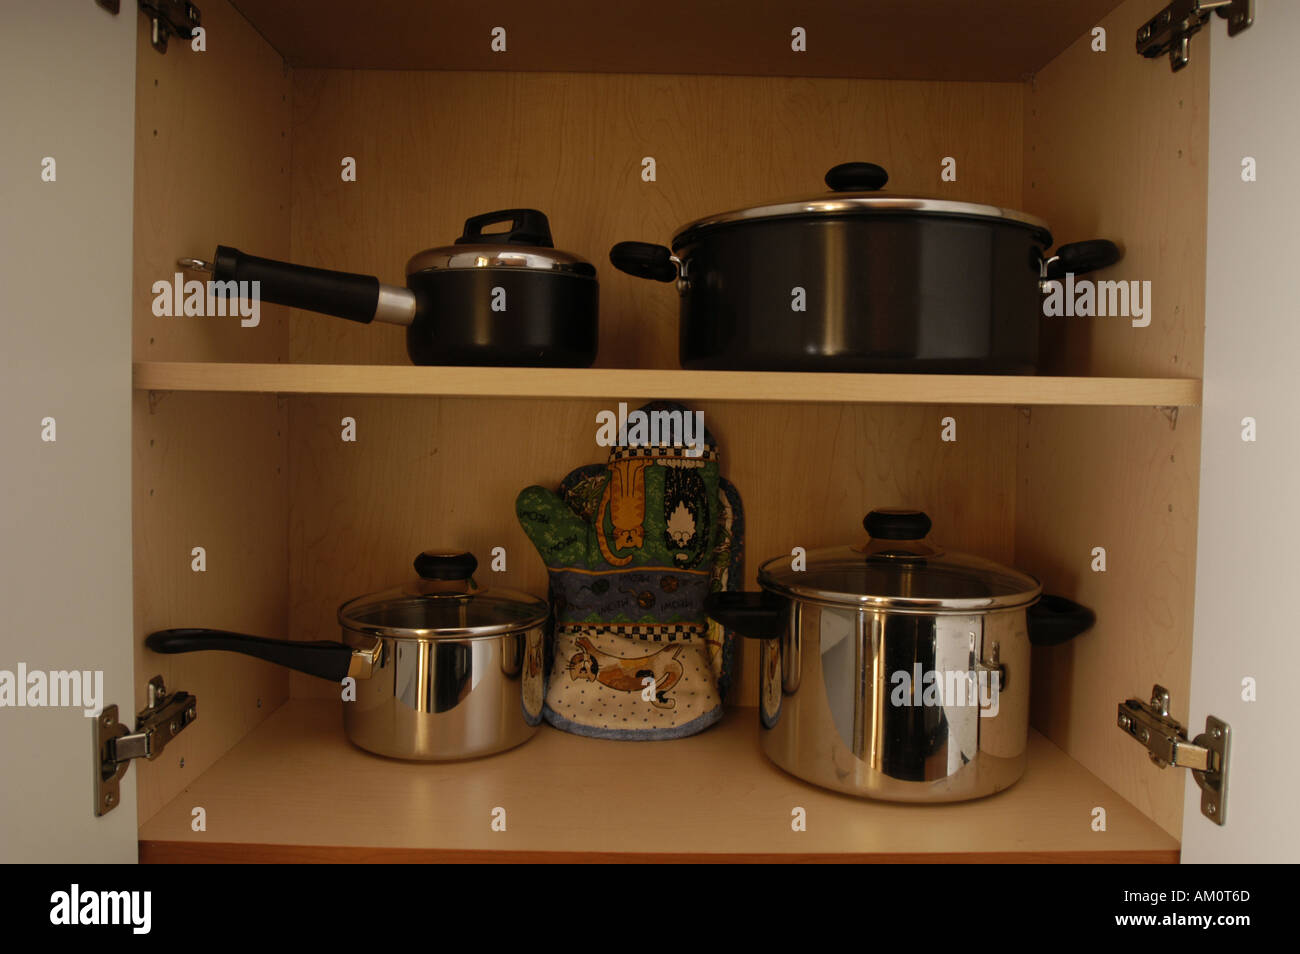 Pots Pans Saucepans Cooking Shelves Cupboards Storage